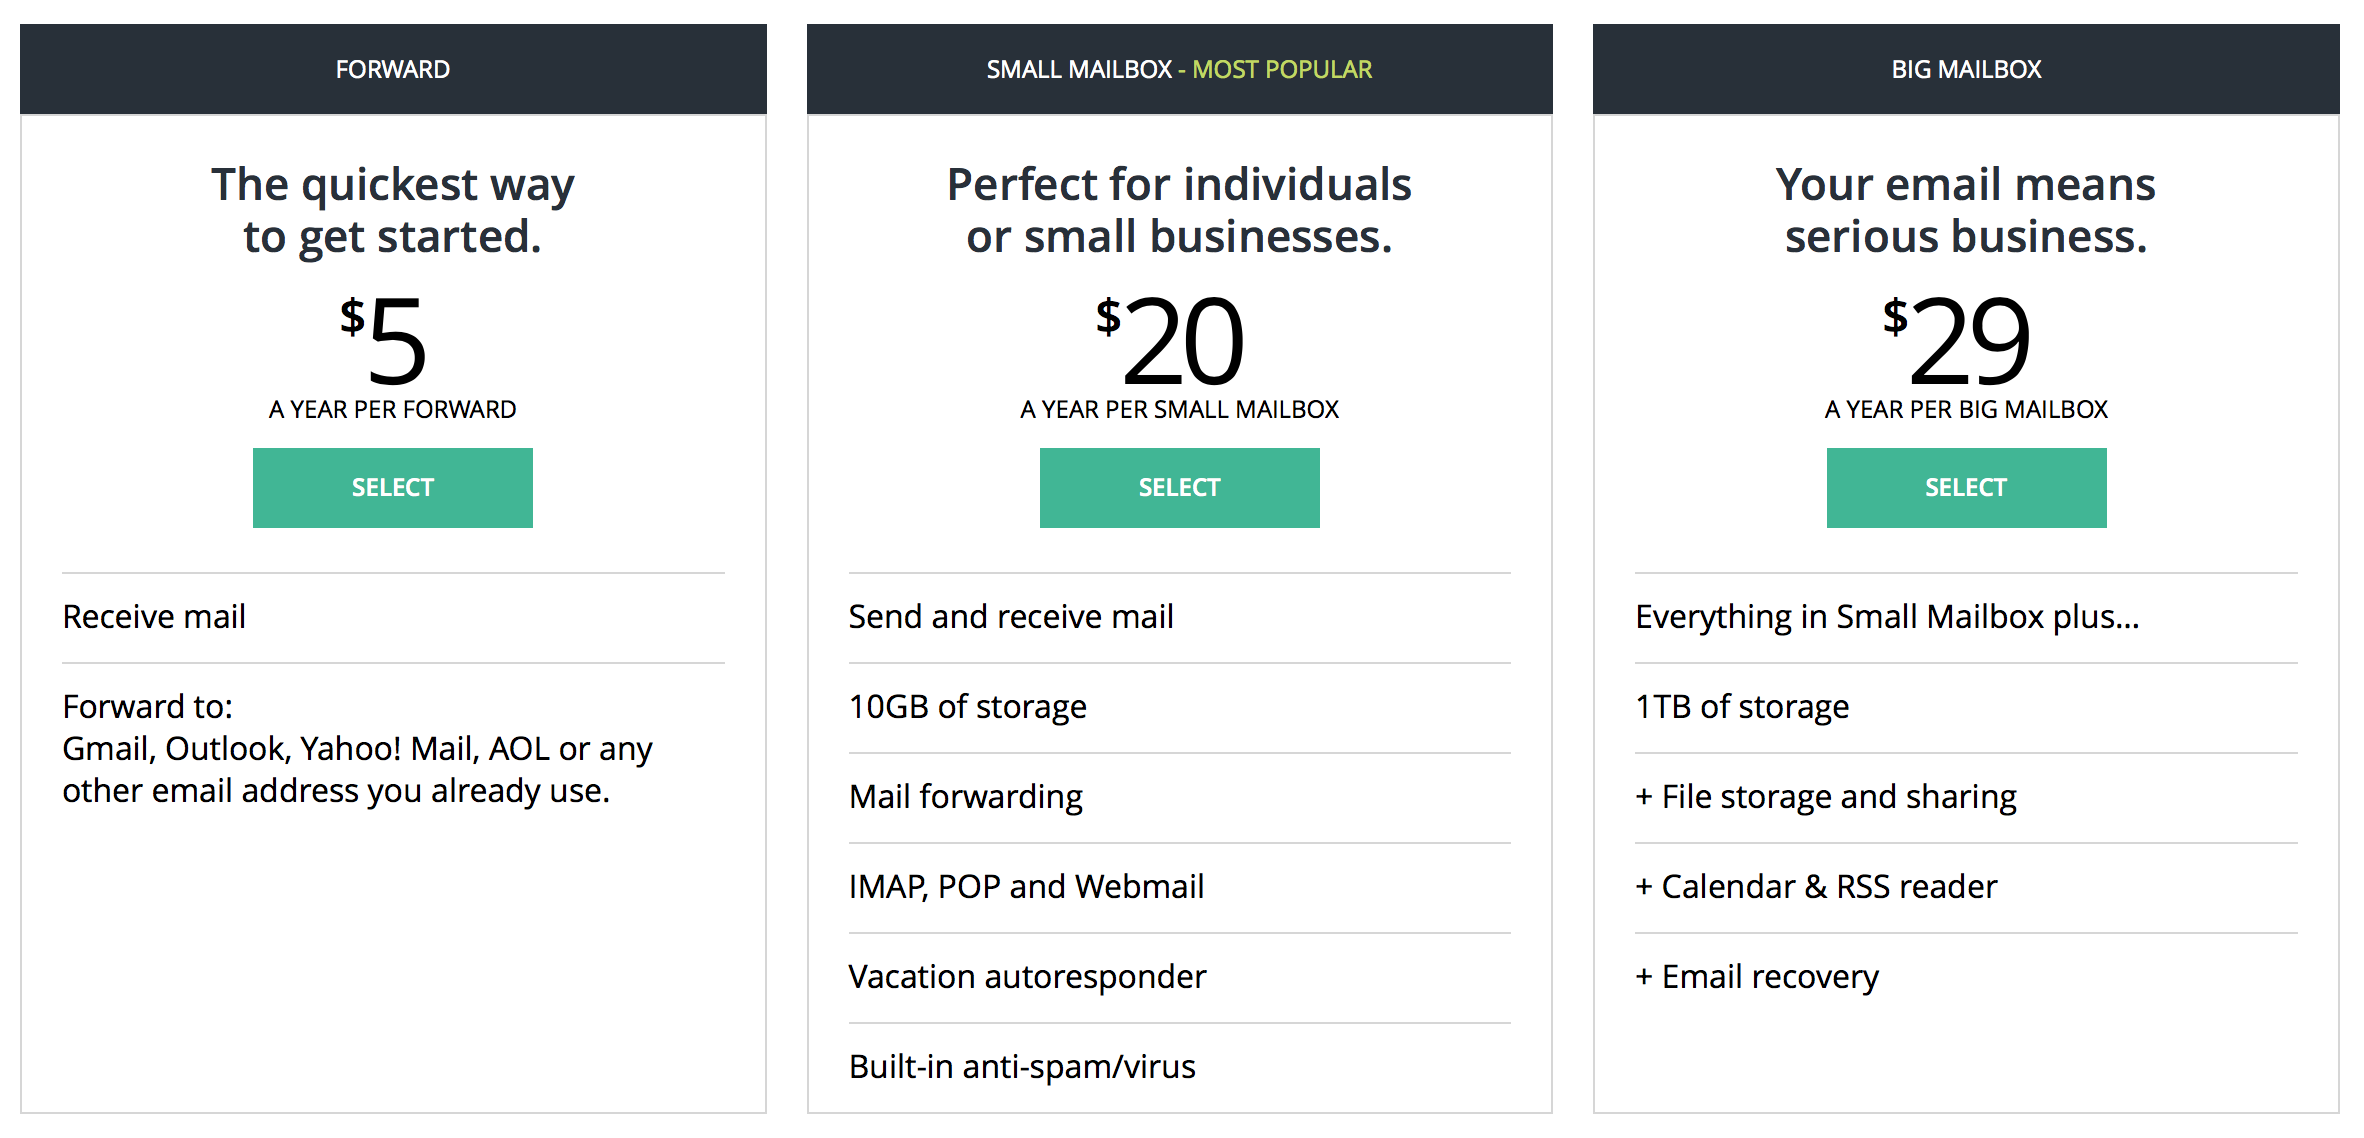 Simple pricing. The Small Mailbox is going to be enough for most people. If you need more (most people won't), you can upgrade at any time.